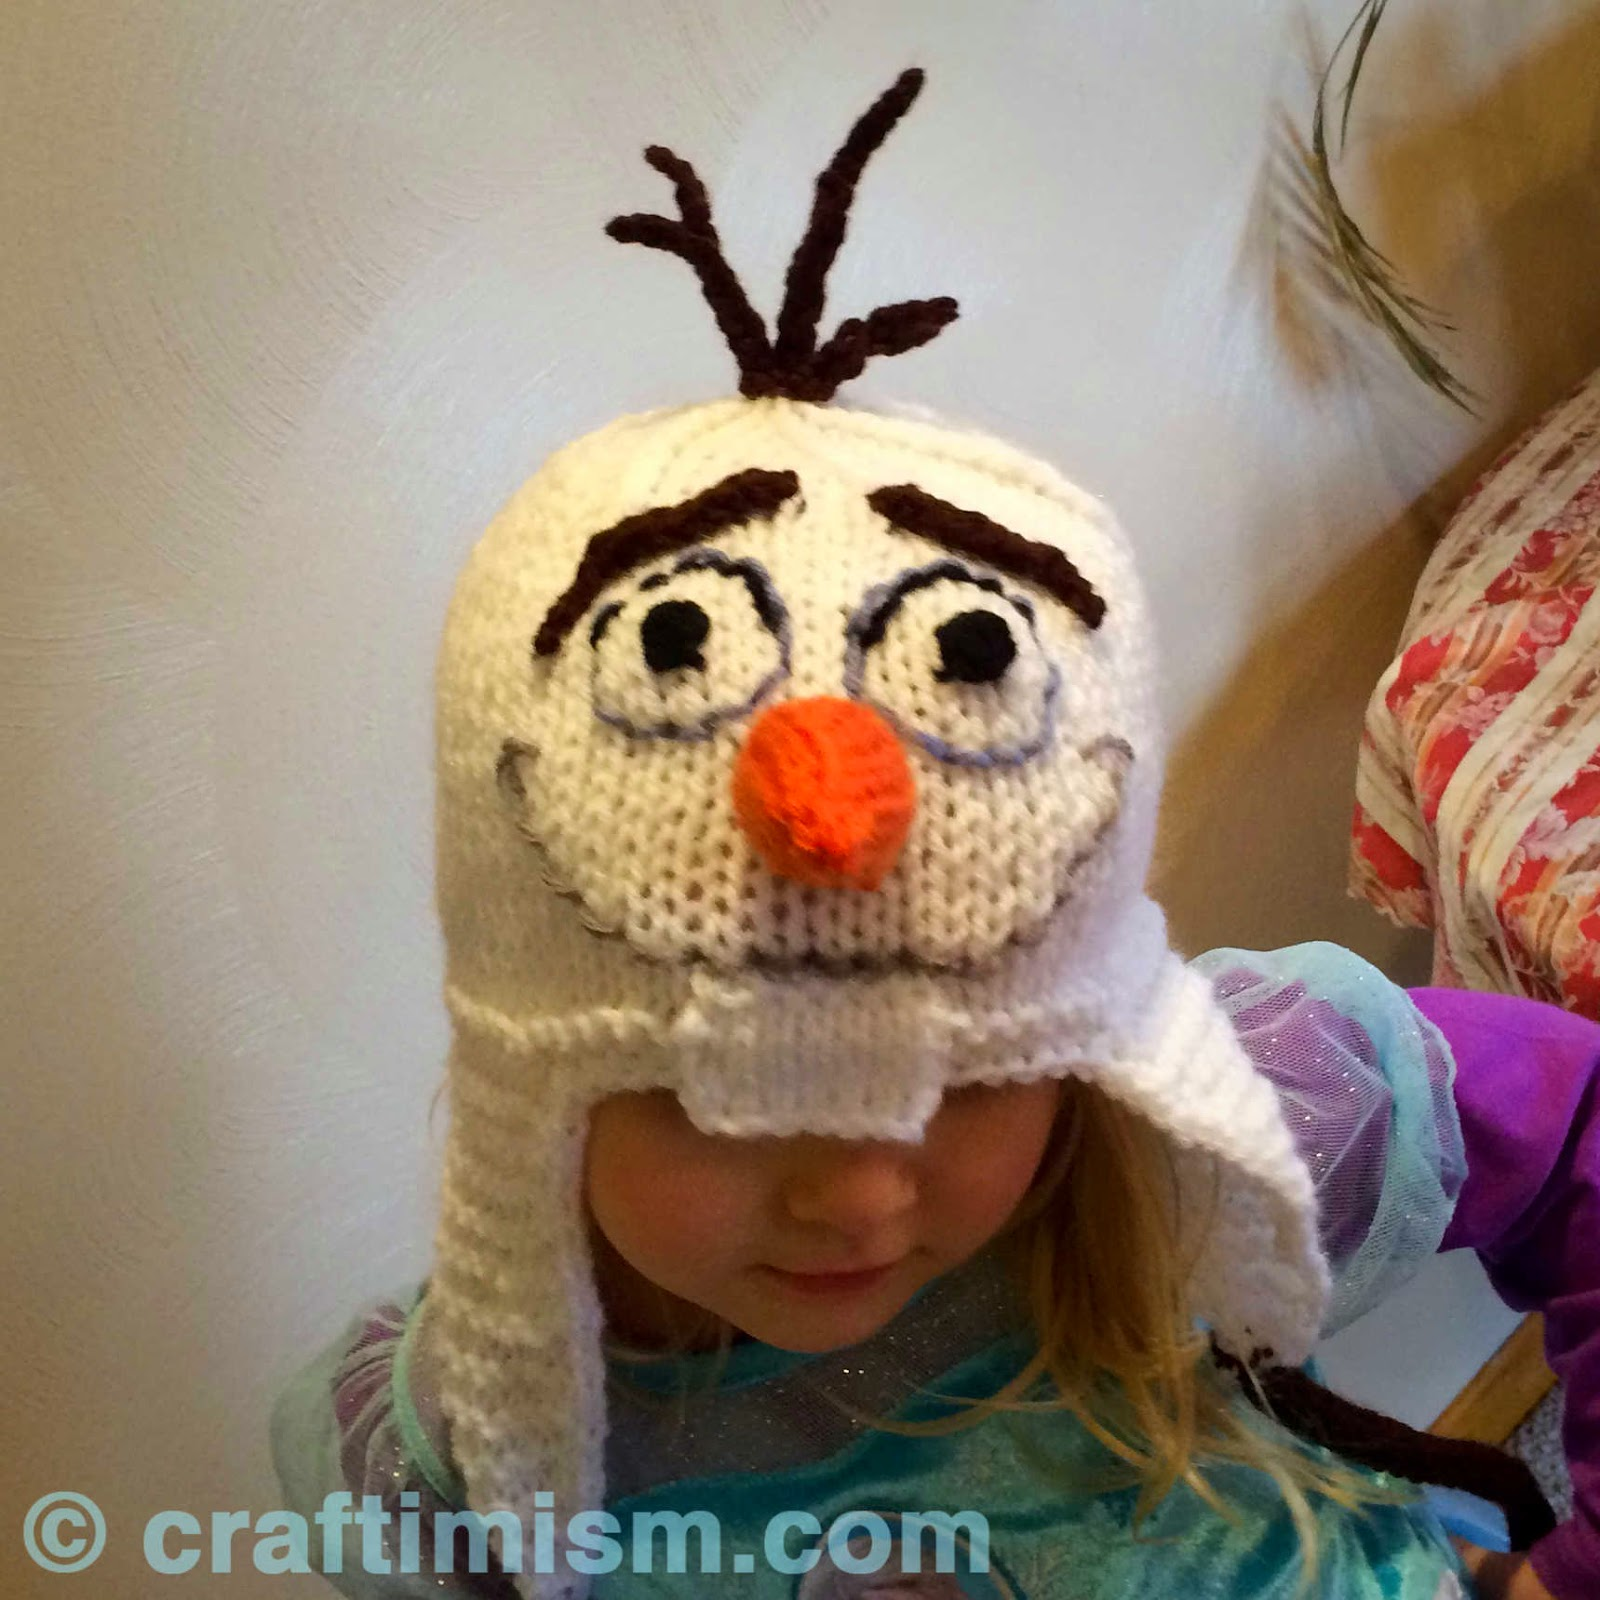 Olaf Hat Knitting Pattern by Heidi Arjes https://www.craftimism.com/2015/01/olaf-inspired-knit-hat.html